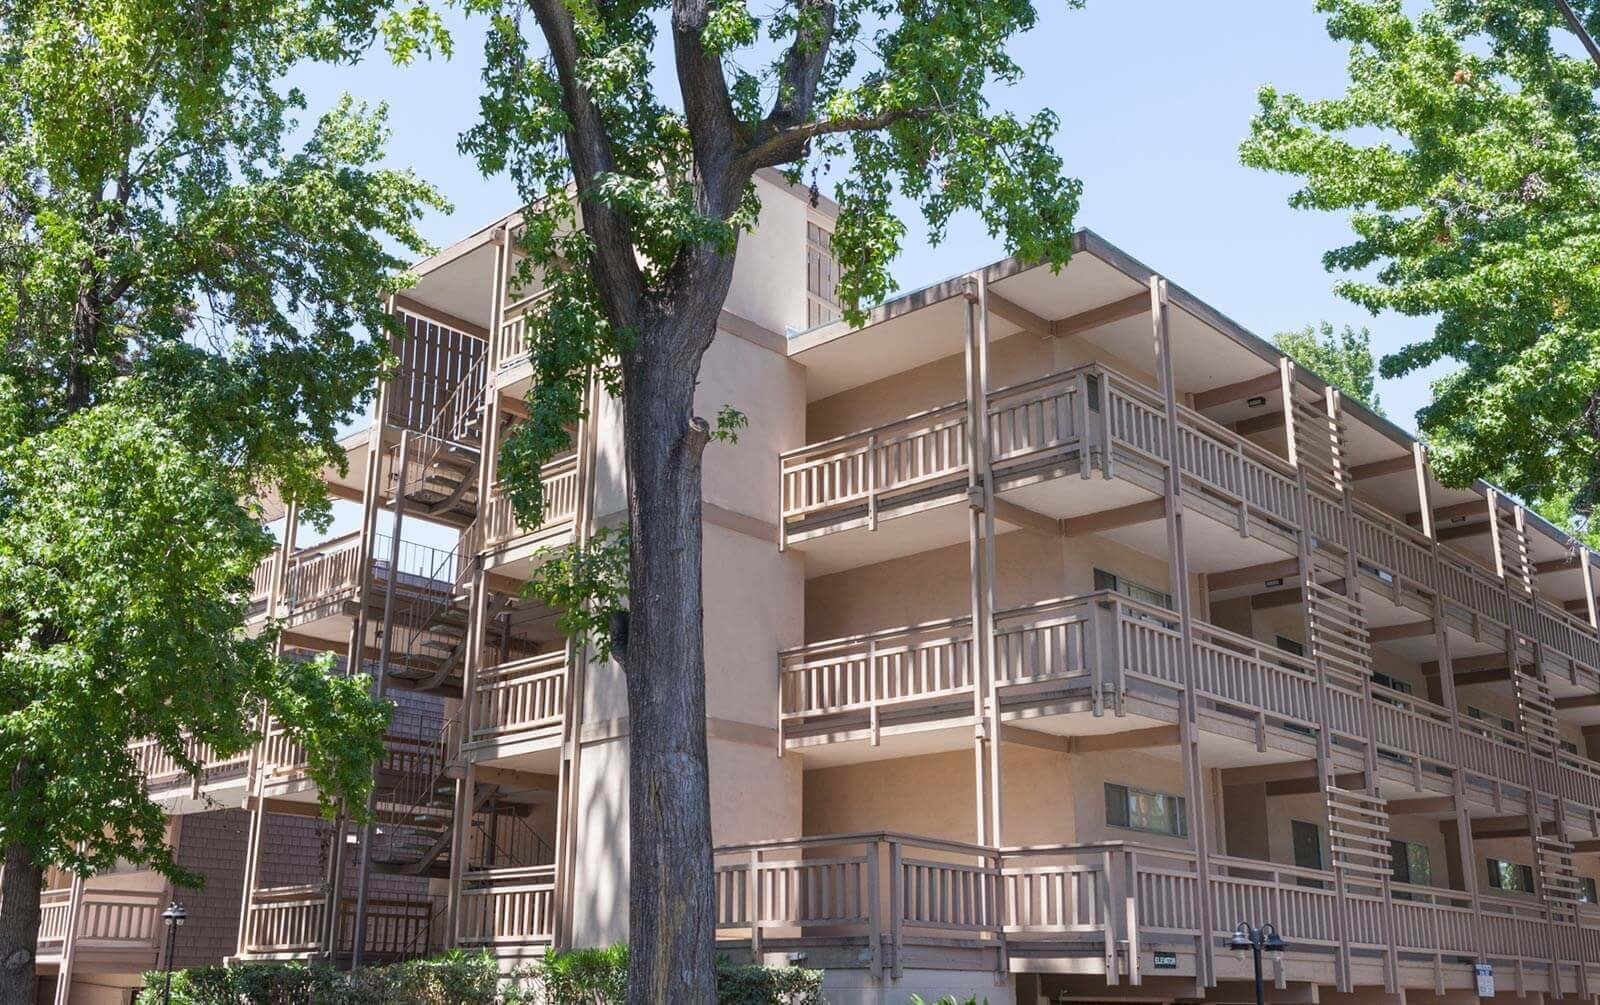 Exterior of building  With Mature Trees at The Glens, San Jose